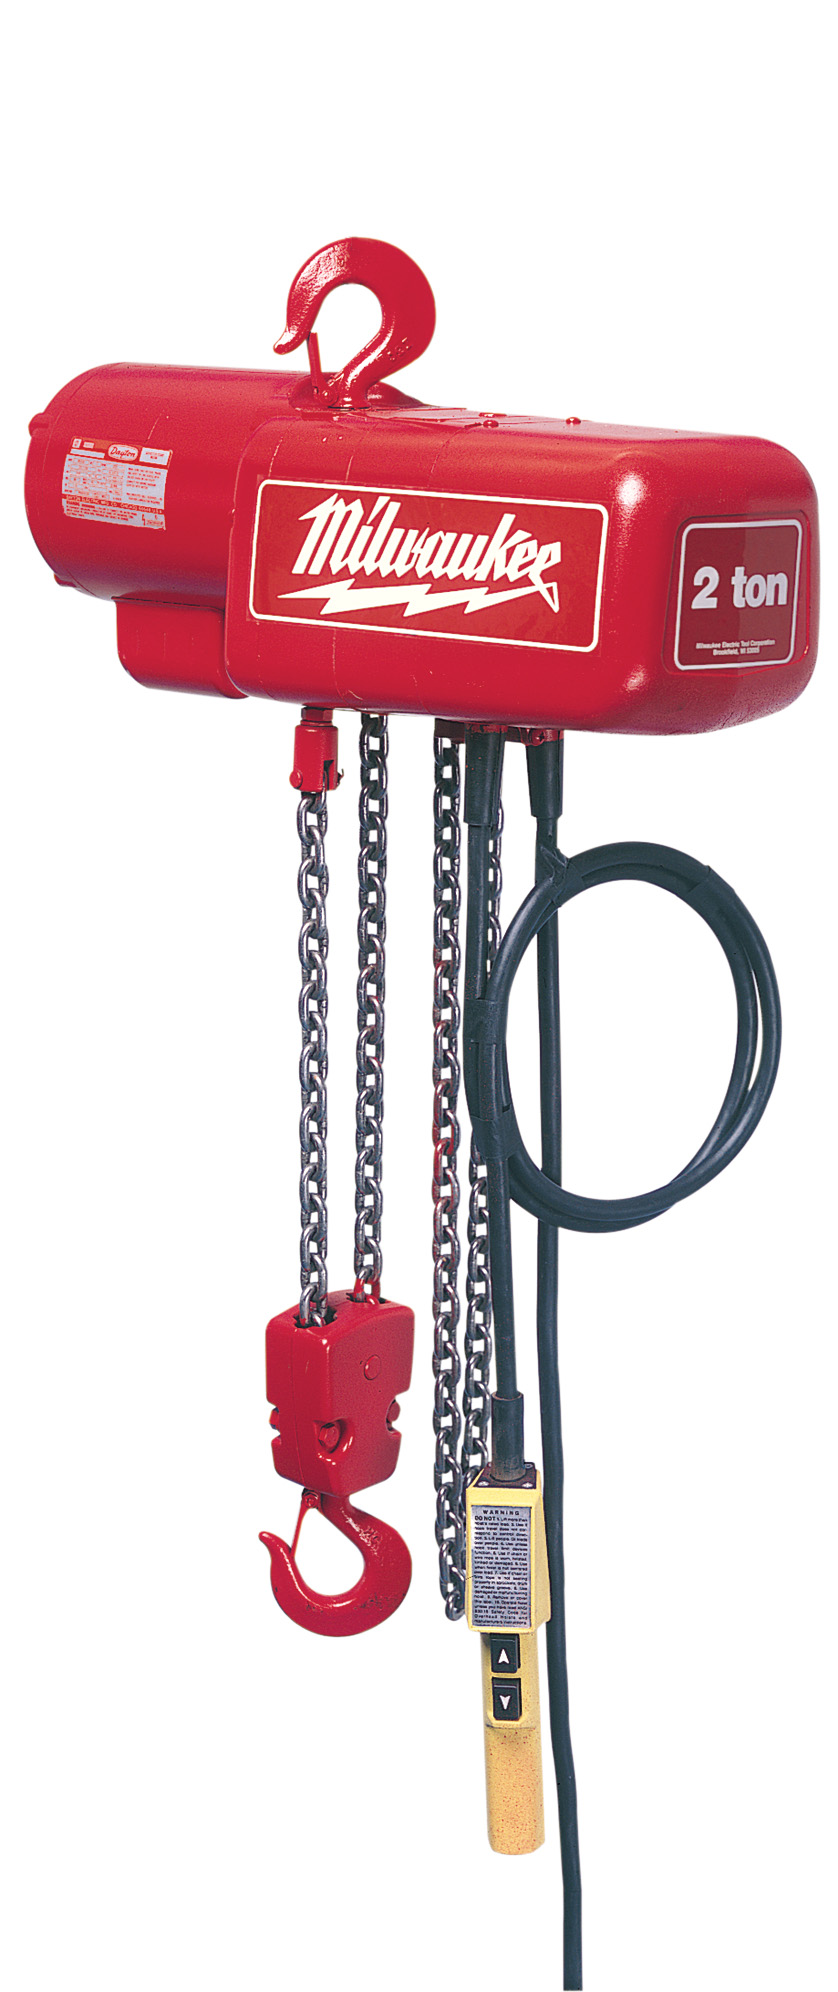 Milwaukee® 9565 1-Phase Lightweight Electric Chain Hoist, 1 ton Load, 10 ft H Lifting, 1 hp Power Rating, 115 to 230 VAC